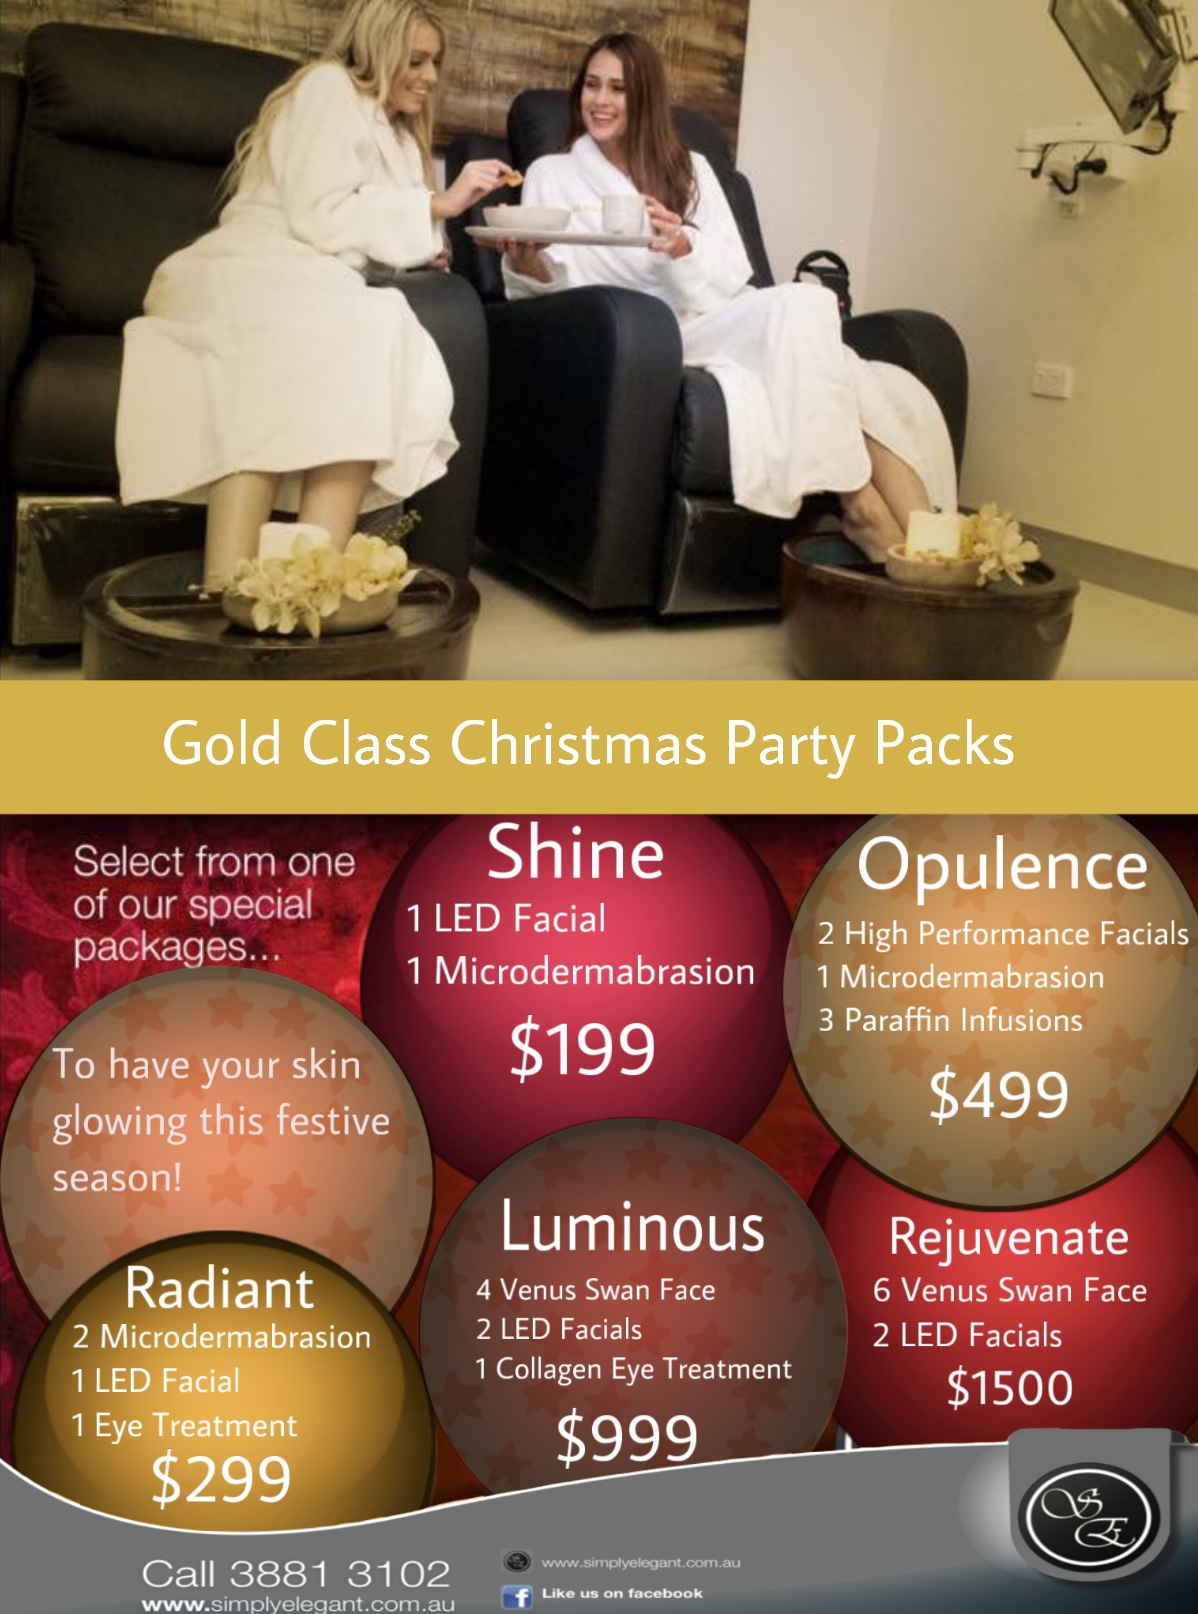 Special Christmas Party Packages